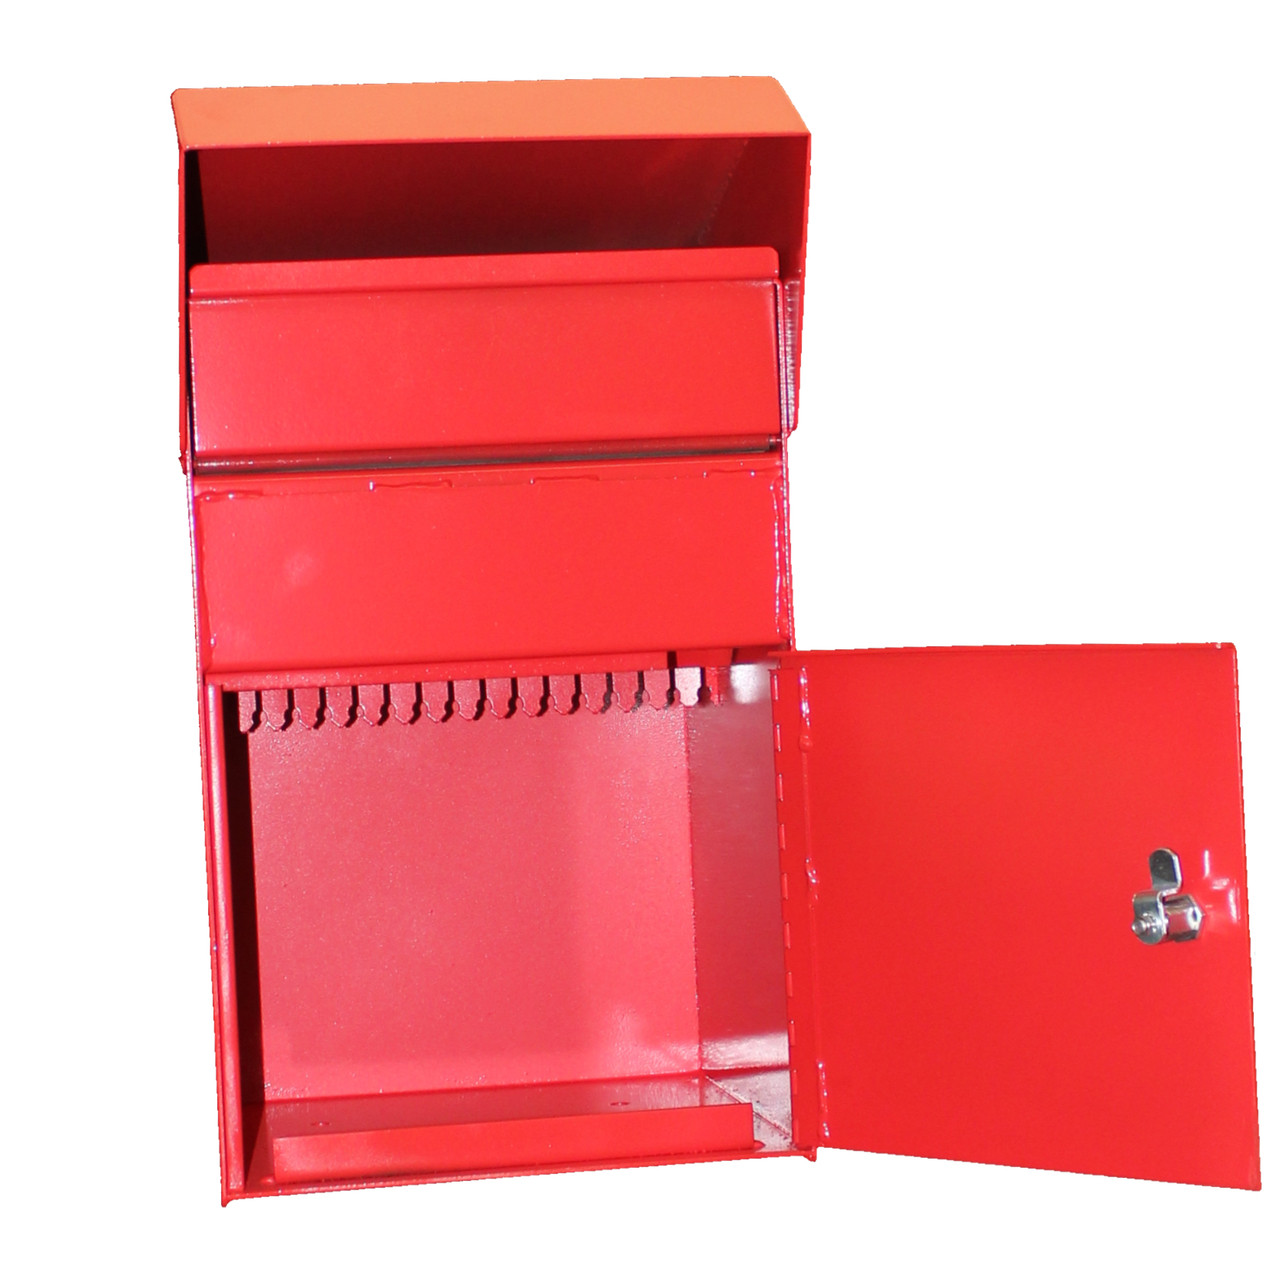 Extra Large Outdoor Secure Payment Drop Box door open